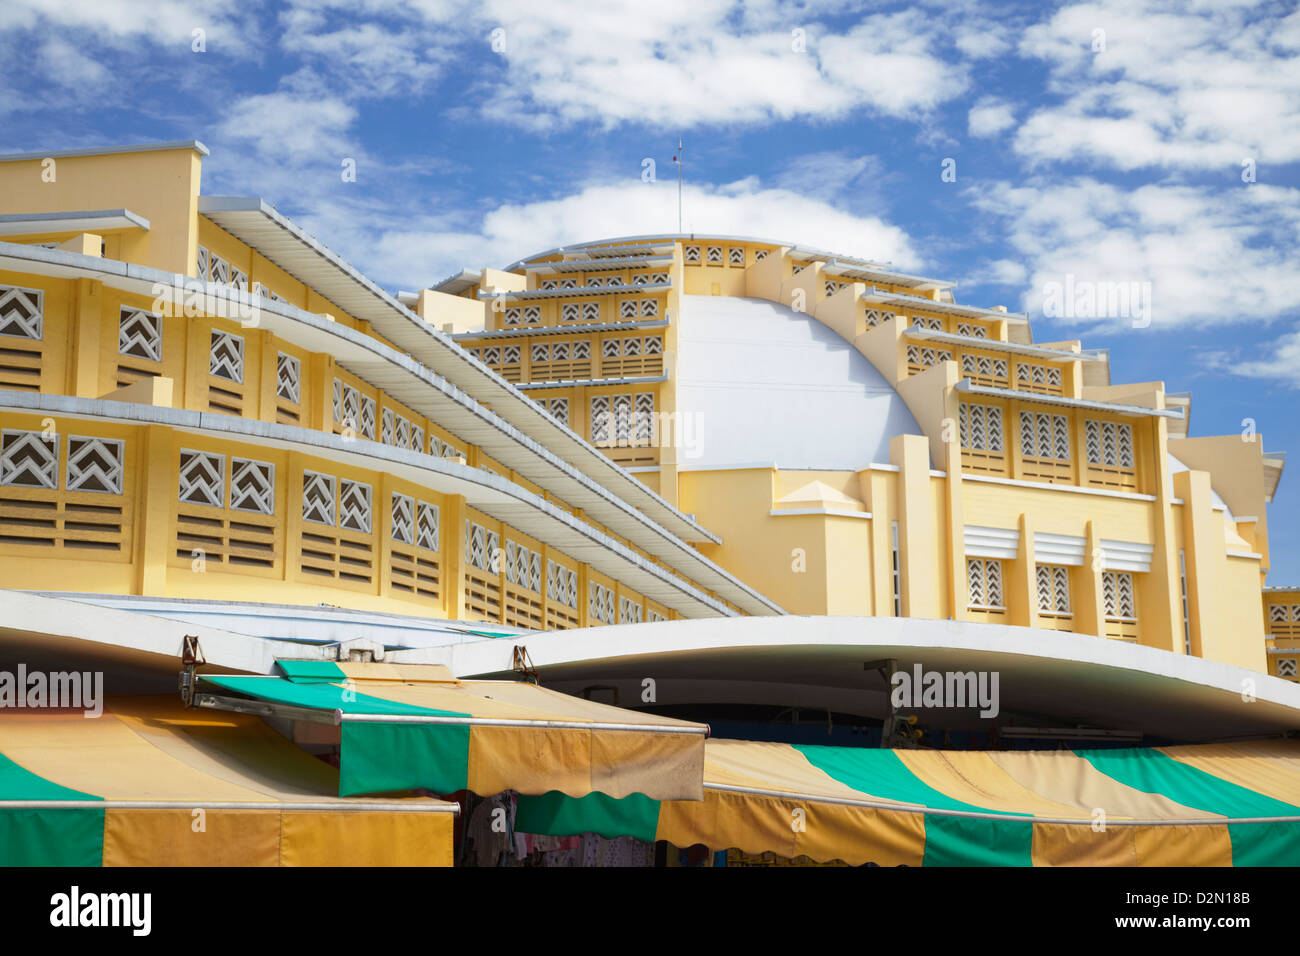 Art Deco architecture of Central Market, Phnom Penh, Cambodia, Indochina, Southeast Asia, Asia - Stock Image